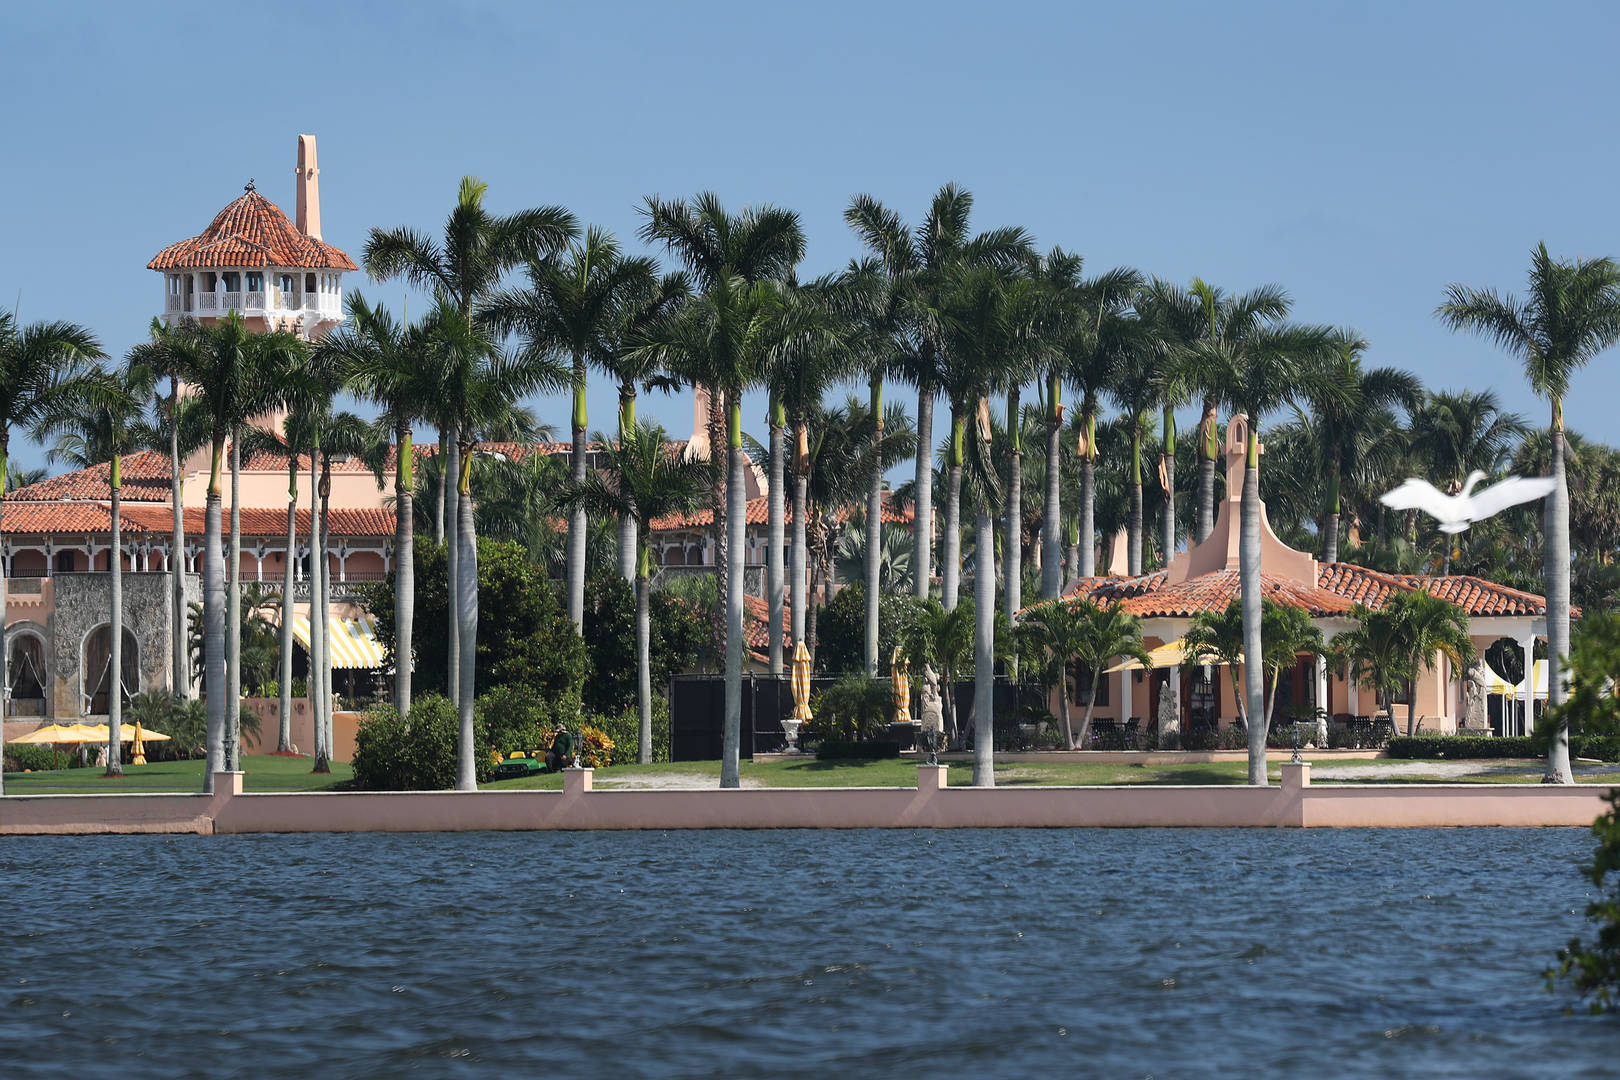 Trump's Mar-a-Lago Resort Security Breached, Police Fire Shots During Car Chase